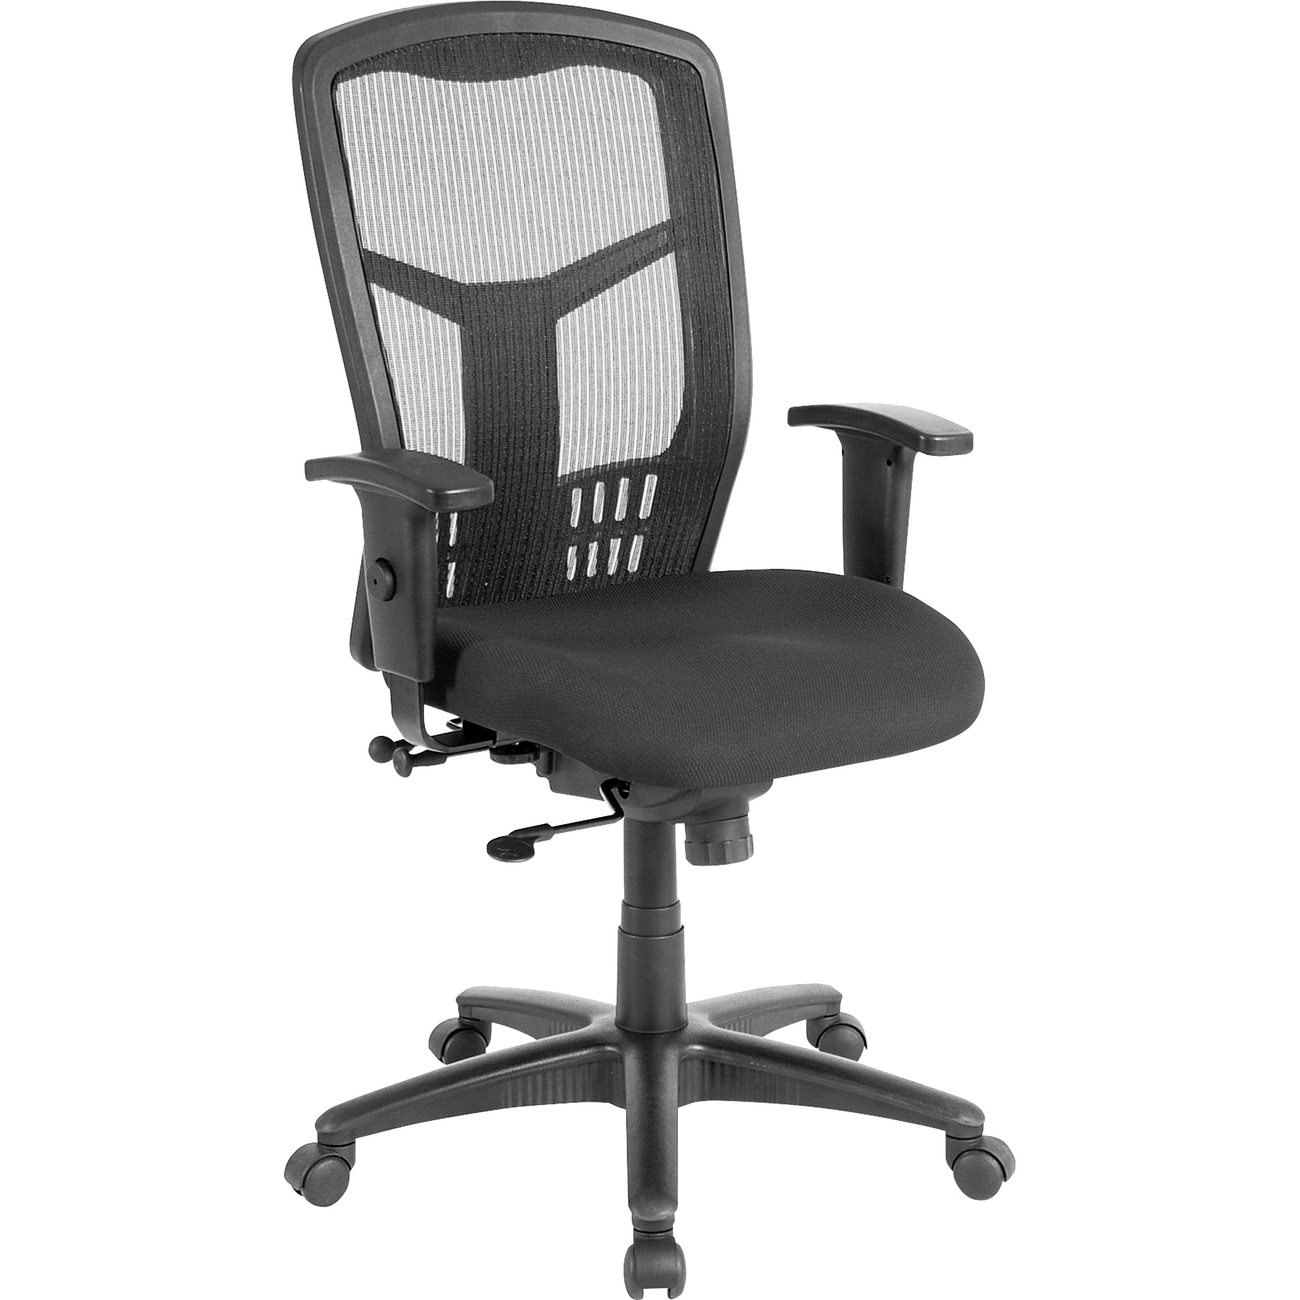 Black High Back Chair Features A Mesh Back And Seat And Plastic Coated  Steel Frame ...